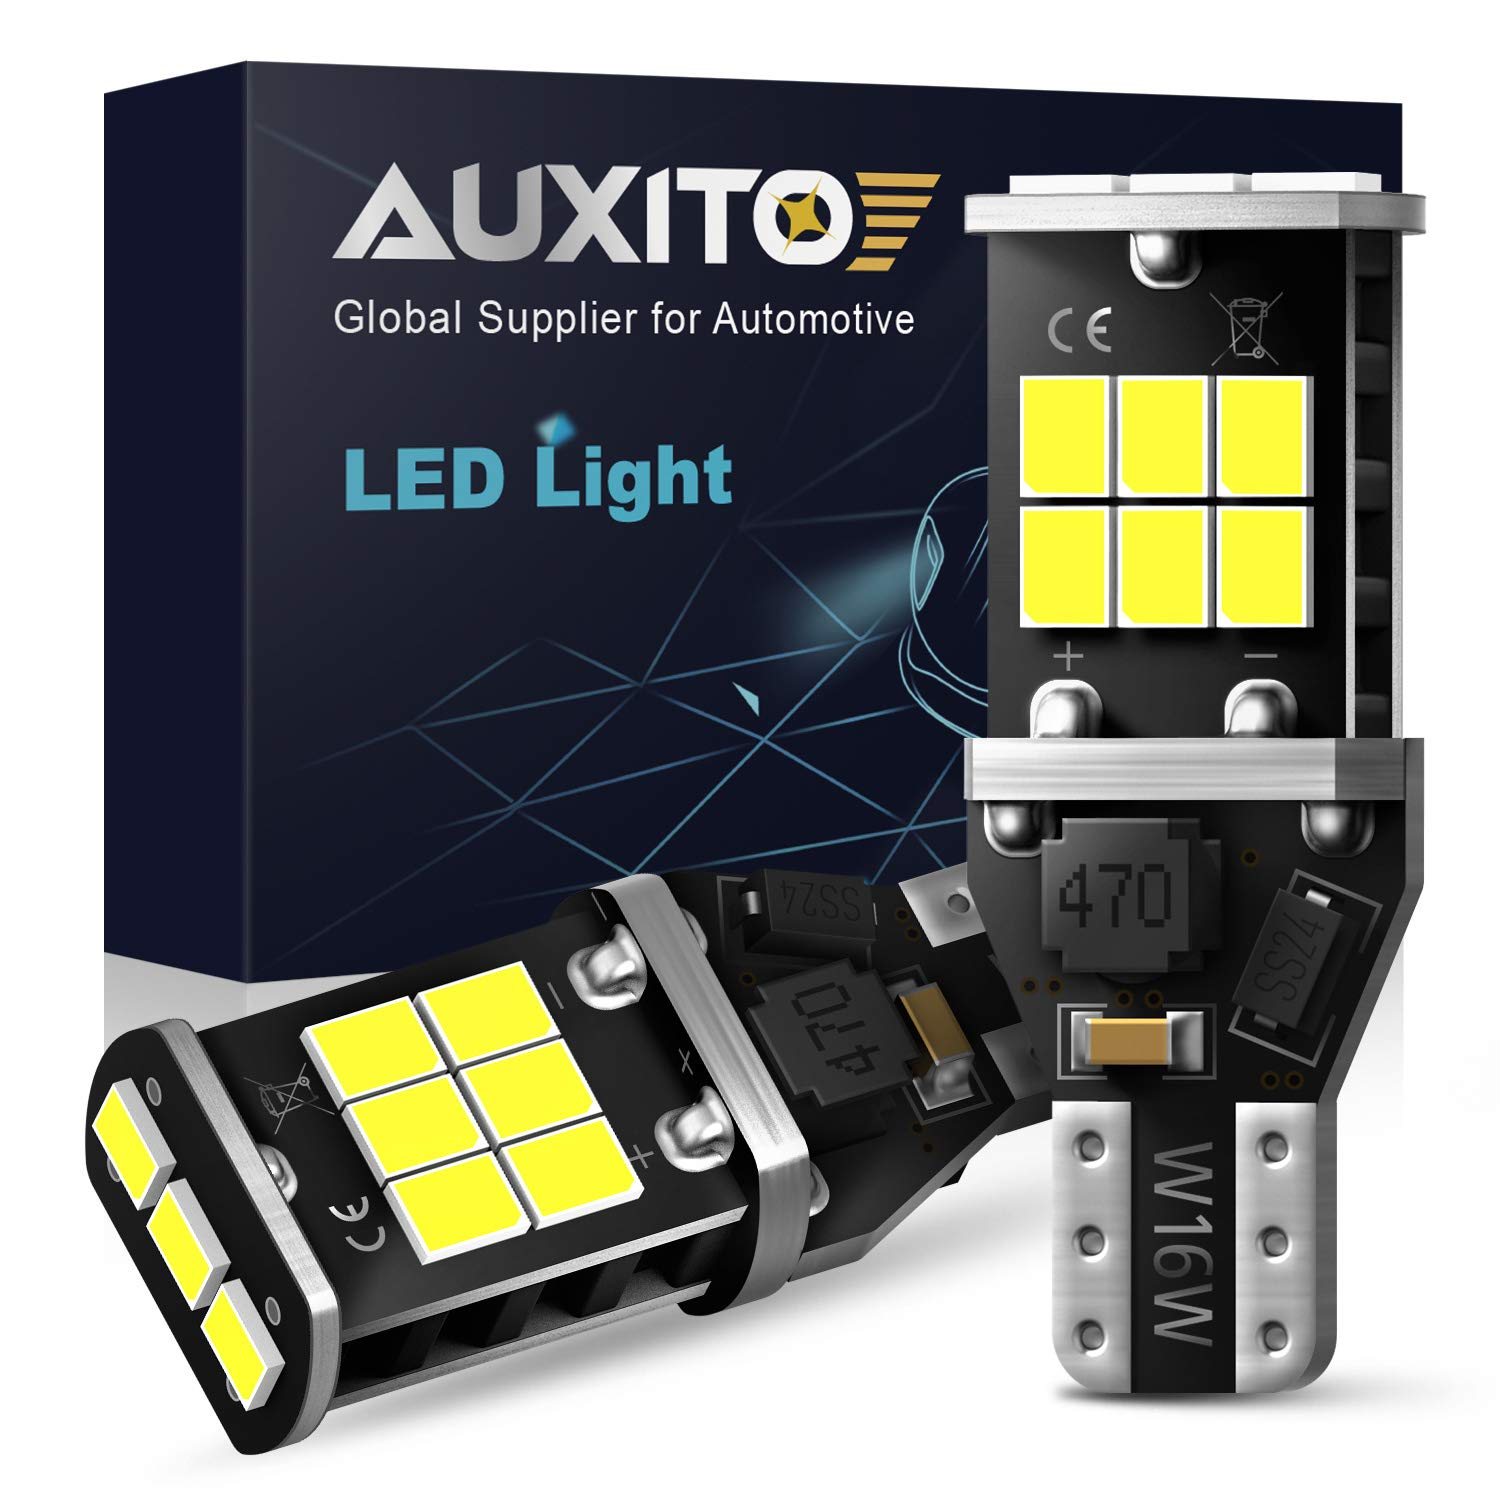 AUXITO 912 921 LED Backup Light Bulbs High Power 2835 15-SMD Chipsets Extremely Bright Error Free T15 906 W16W for Back Up Lights Reverse Lights, 6000K White (Upgraded,Pack of 2) by AUXITO